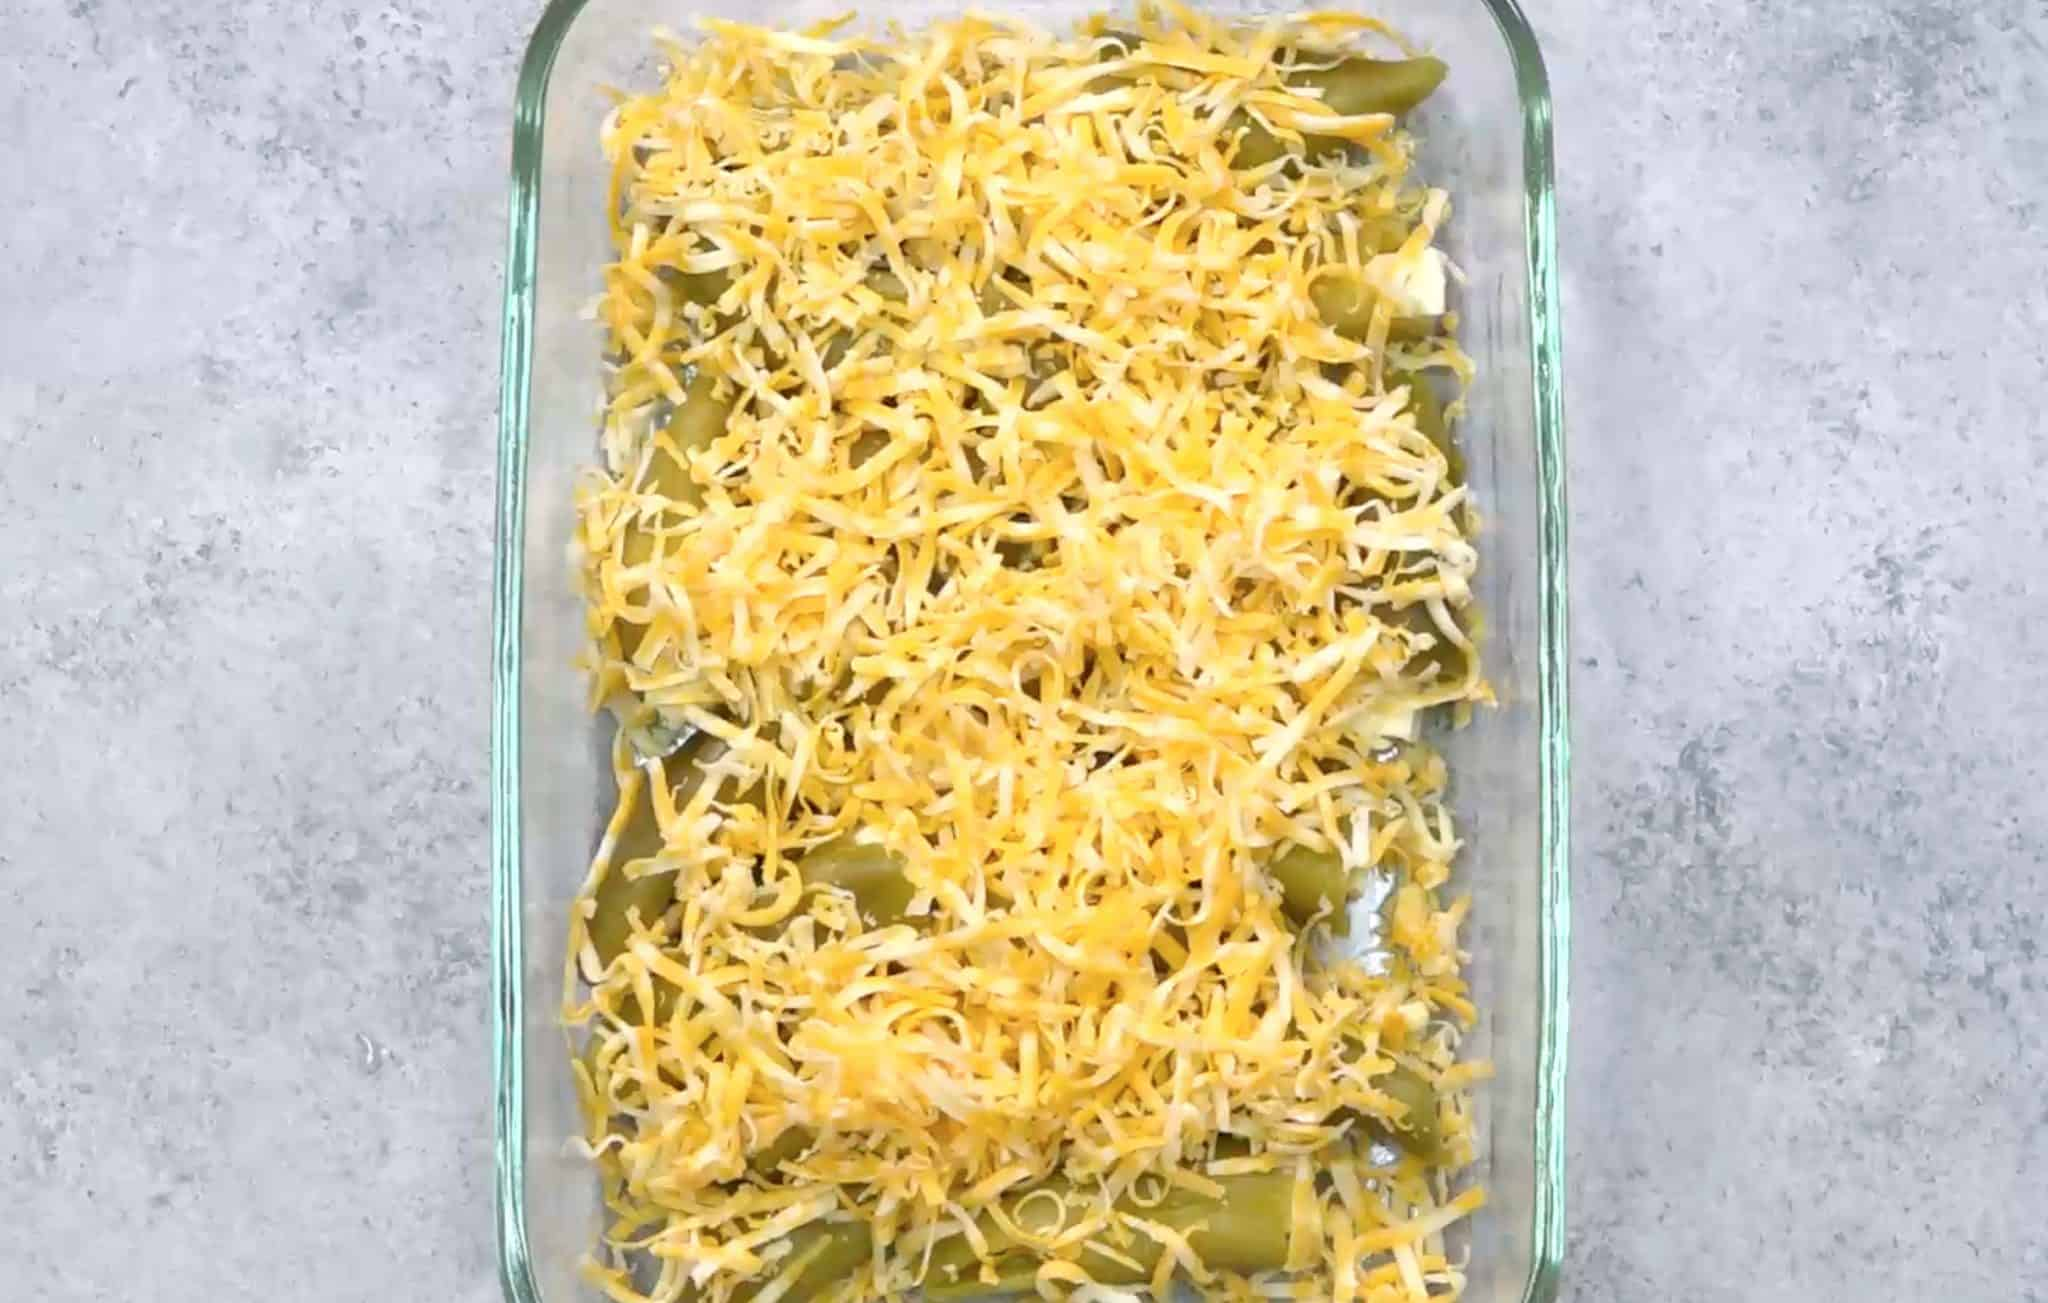 Chiles Stuffed with Cheese and Topped with Grated Cheese